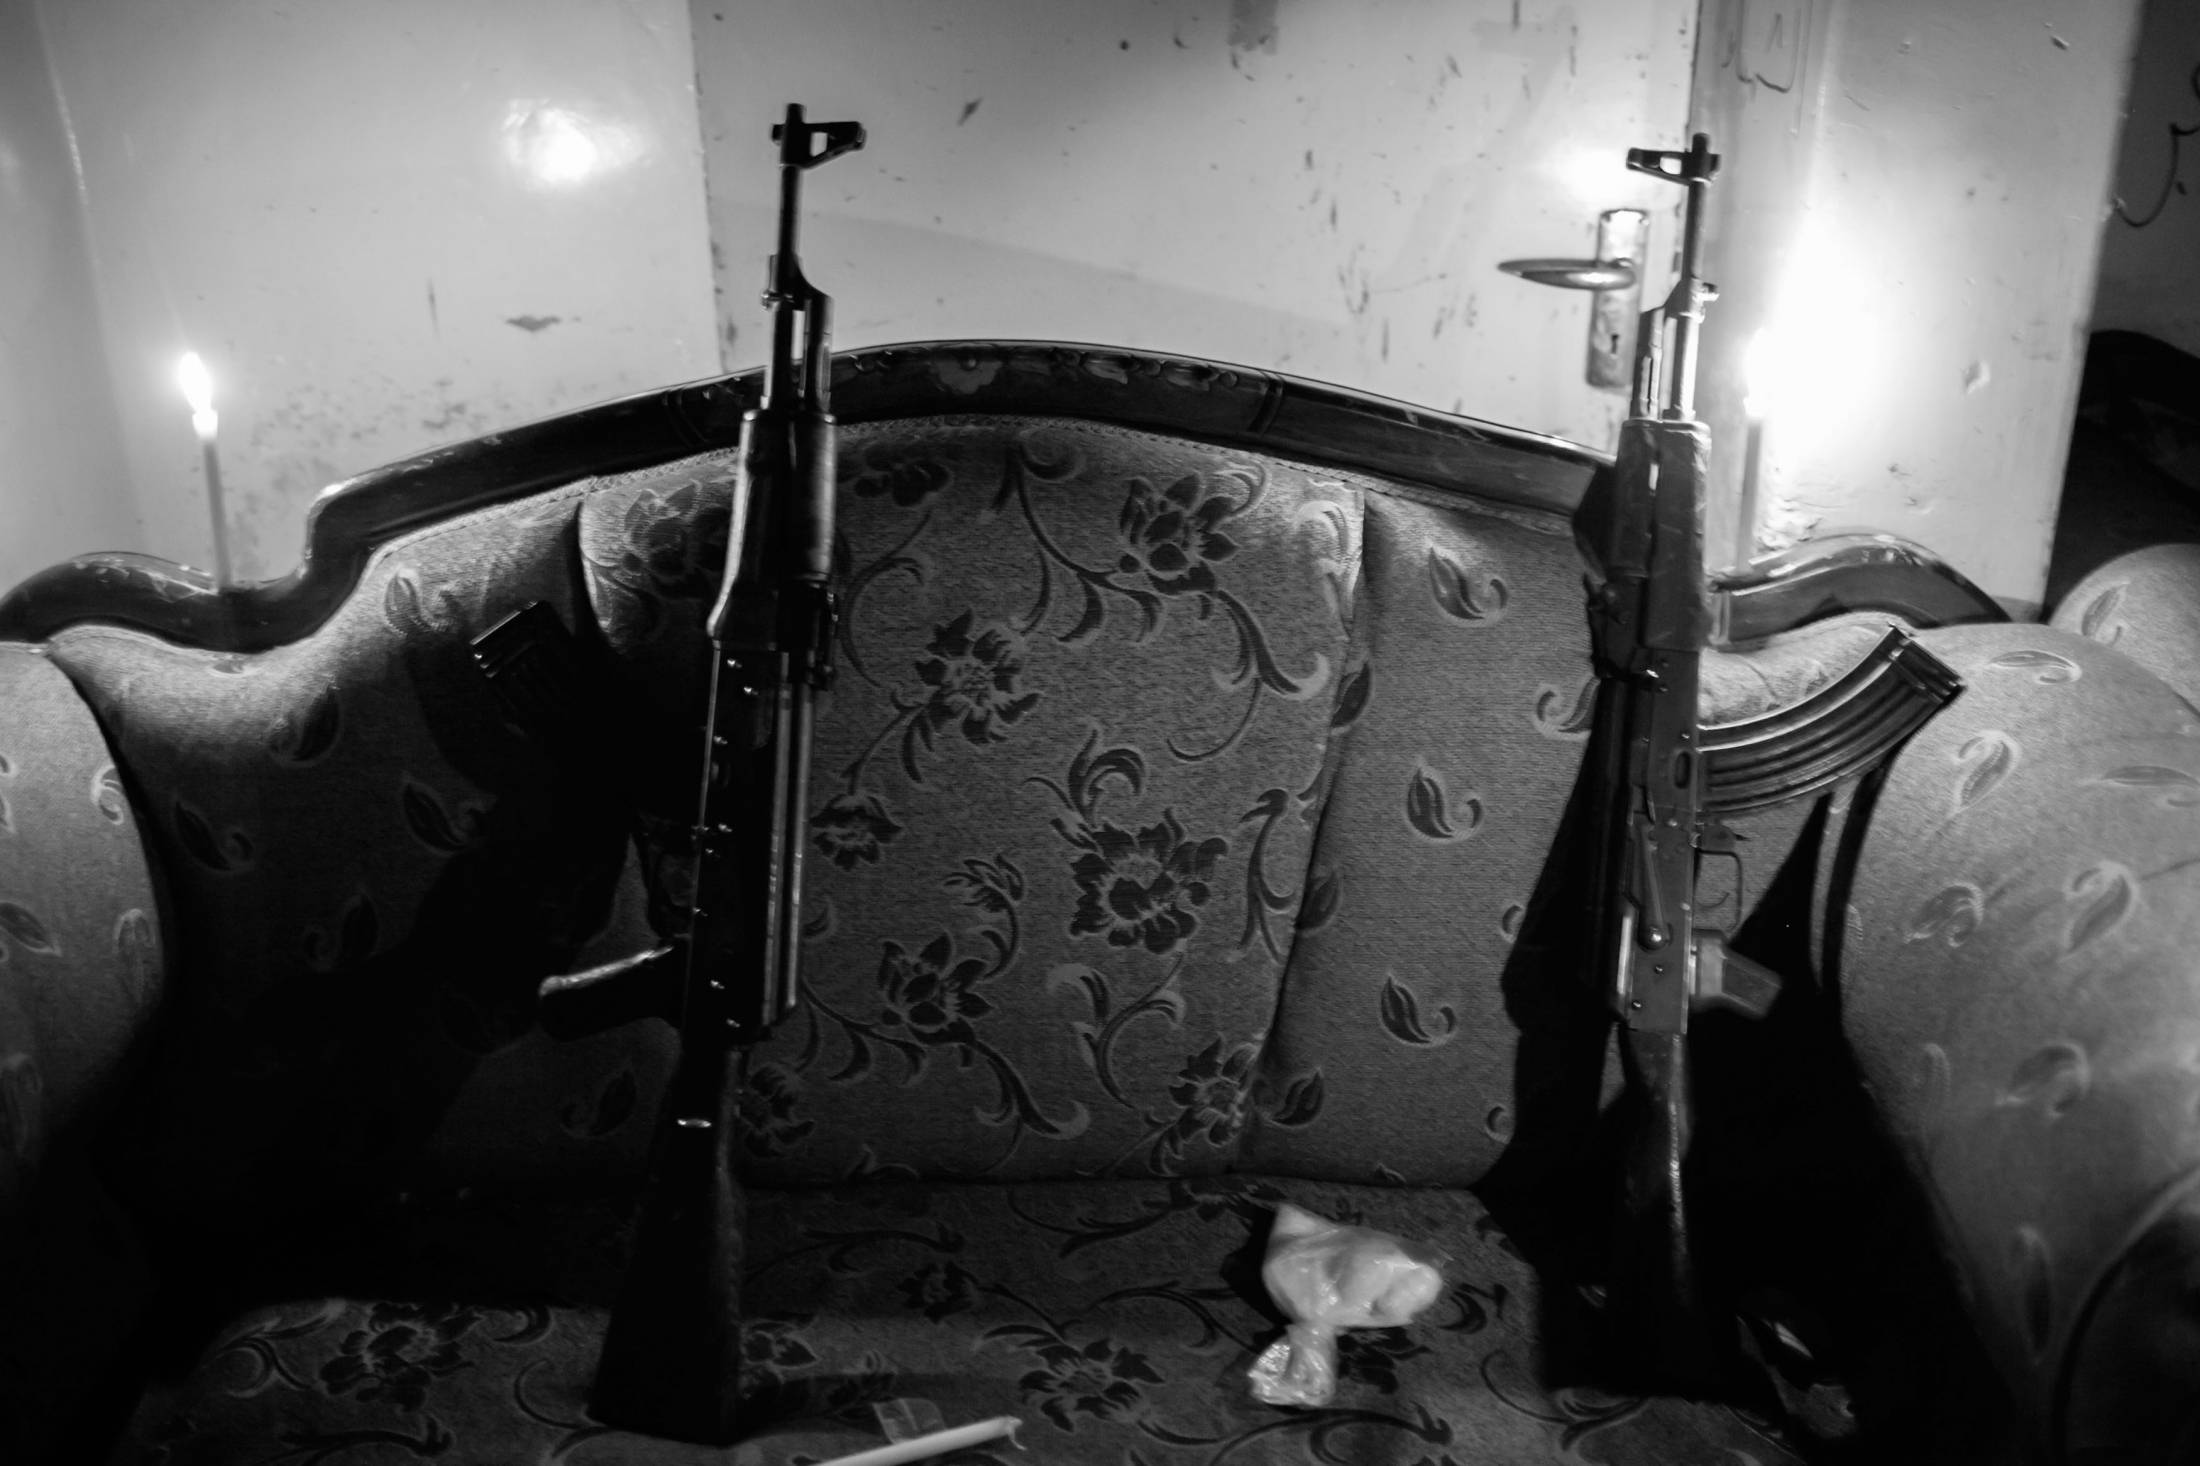 """Two AK47 inside a building used by Islamist Rebel forces to relax in the frontline of Izaah neighborhood of Aleppo, Syria, Wednesday, Jan. 3, 2013. The United Nations estimated that more than 400,000 people have been killed in Syria's 60-month-old uprising against authoritarian rule, a toll one-third higher than what anti-regime activists had counted. The U.N. human rights chief called the toll """"truly shocking."""" Copyright: Spanish Photojournalist Andoni Lubaki"""